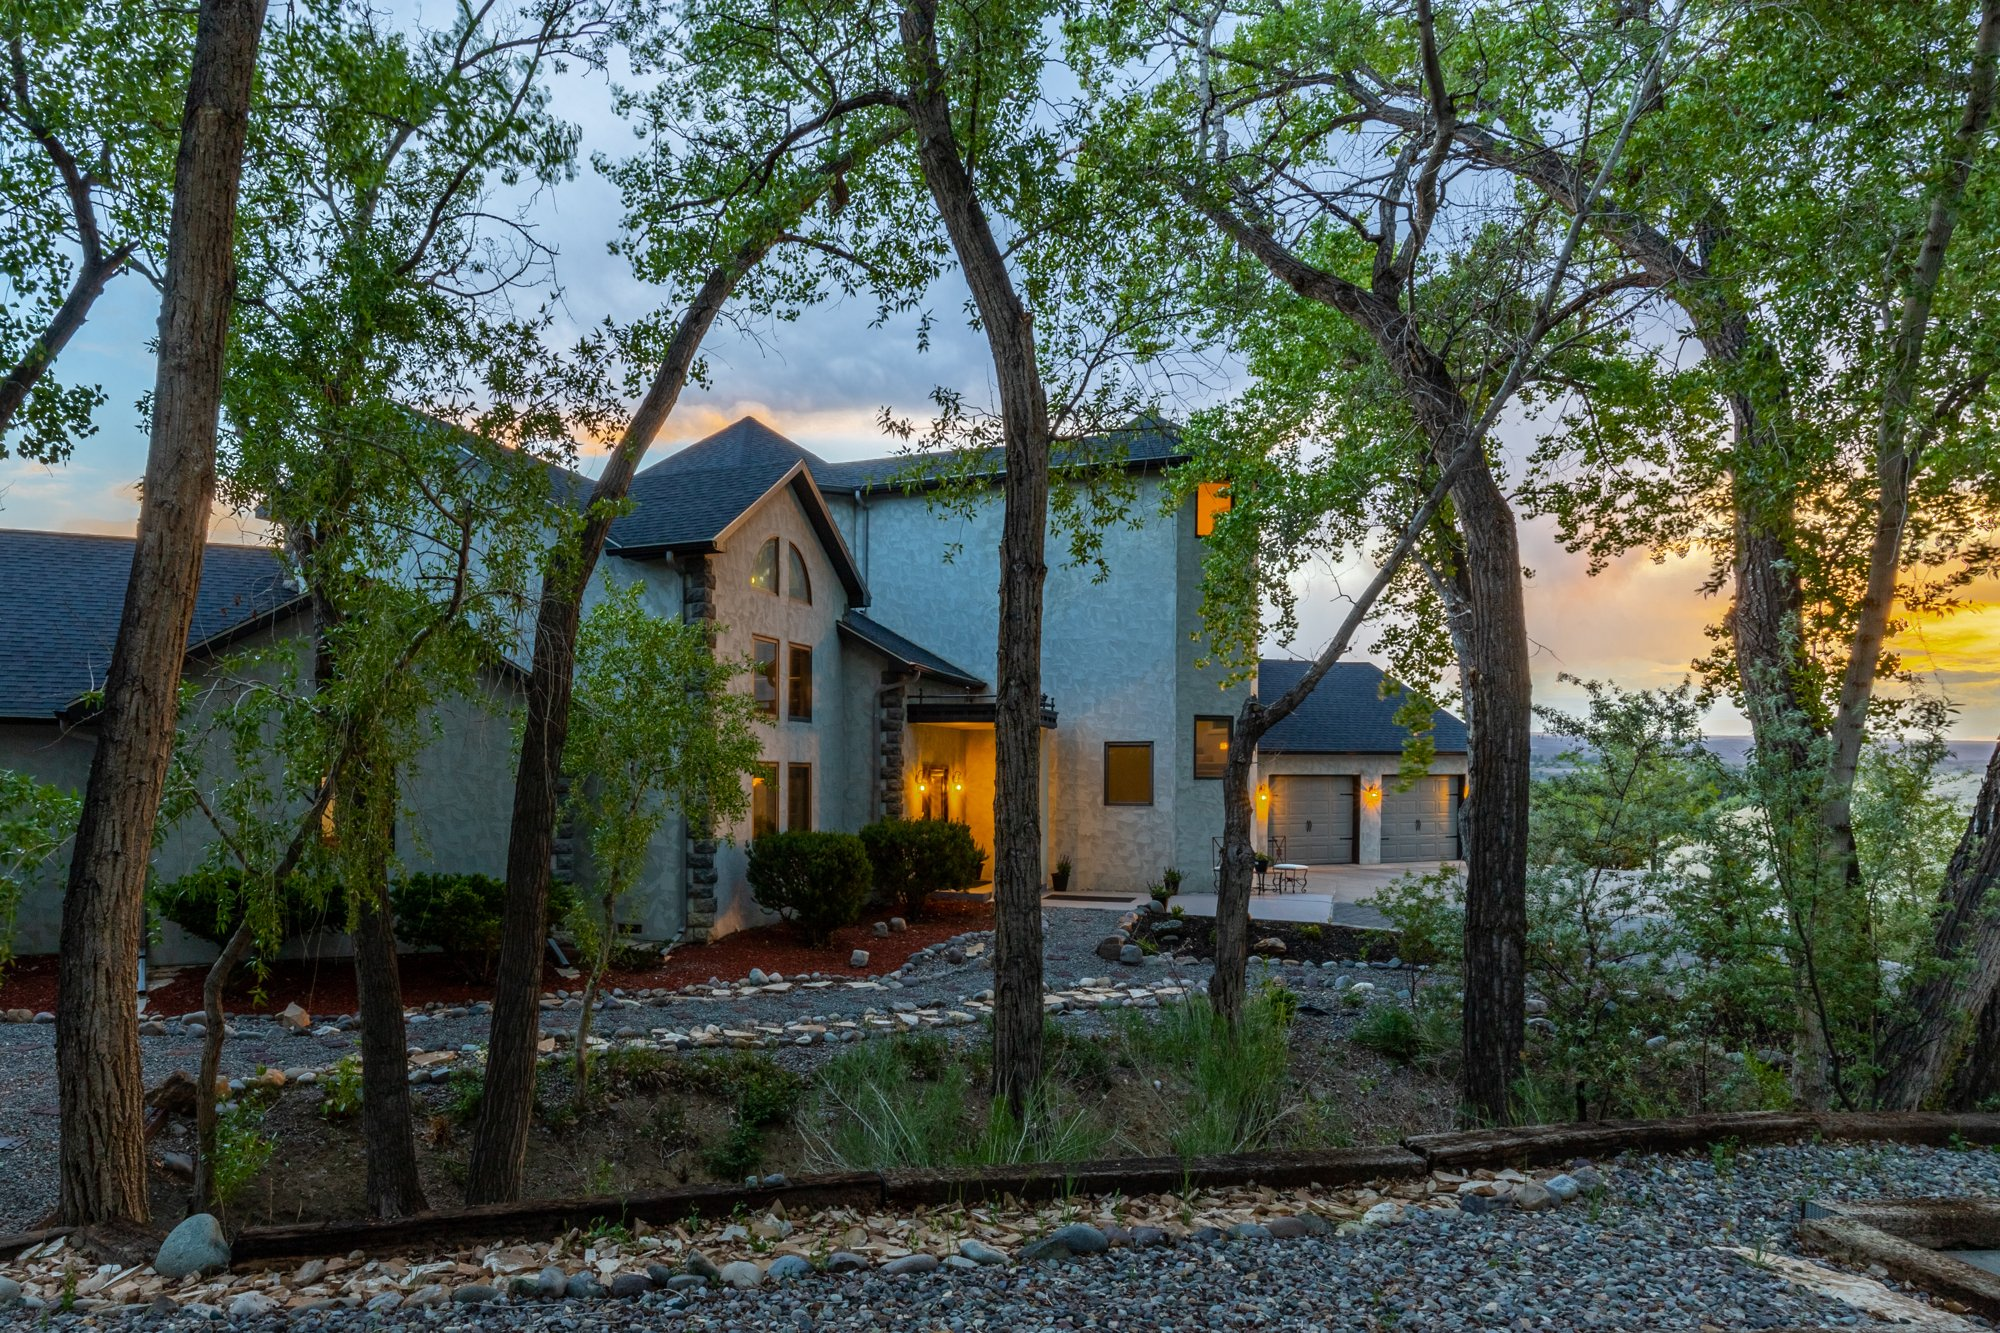 Home with Extensive Landscaping for Sale - 16955 Wildwood Dr. Montrose, CO 81403 - Atha Team Luxury Real Estate